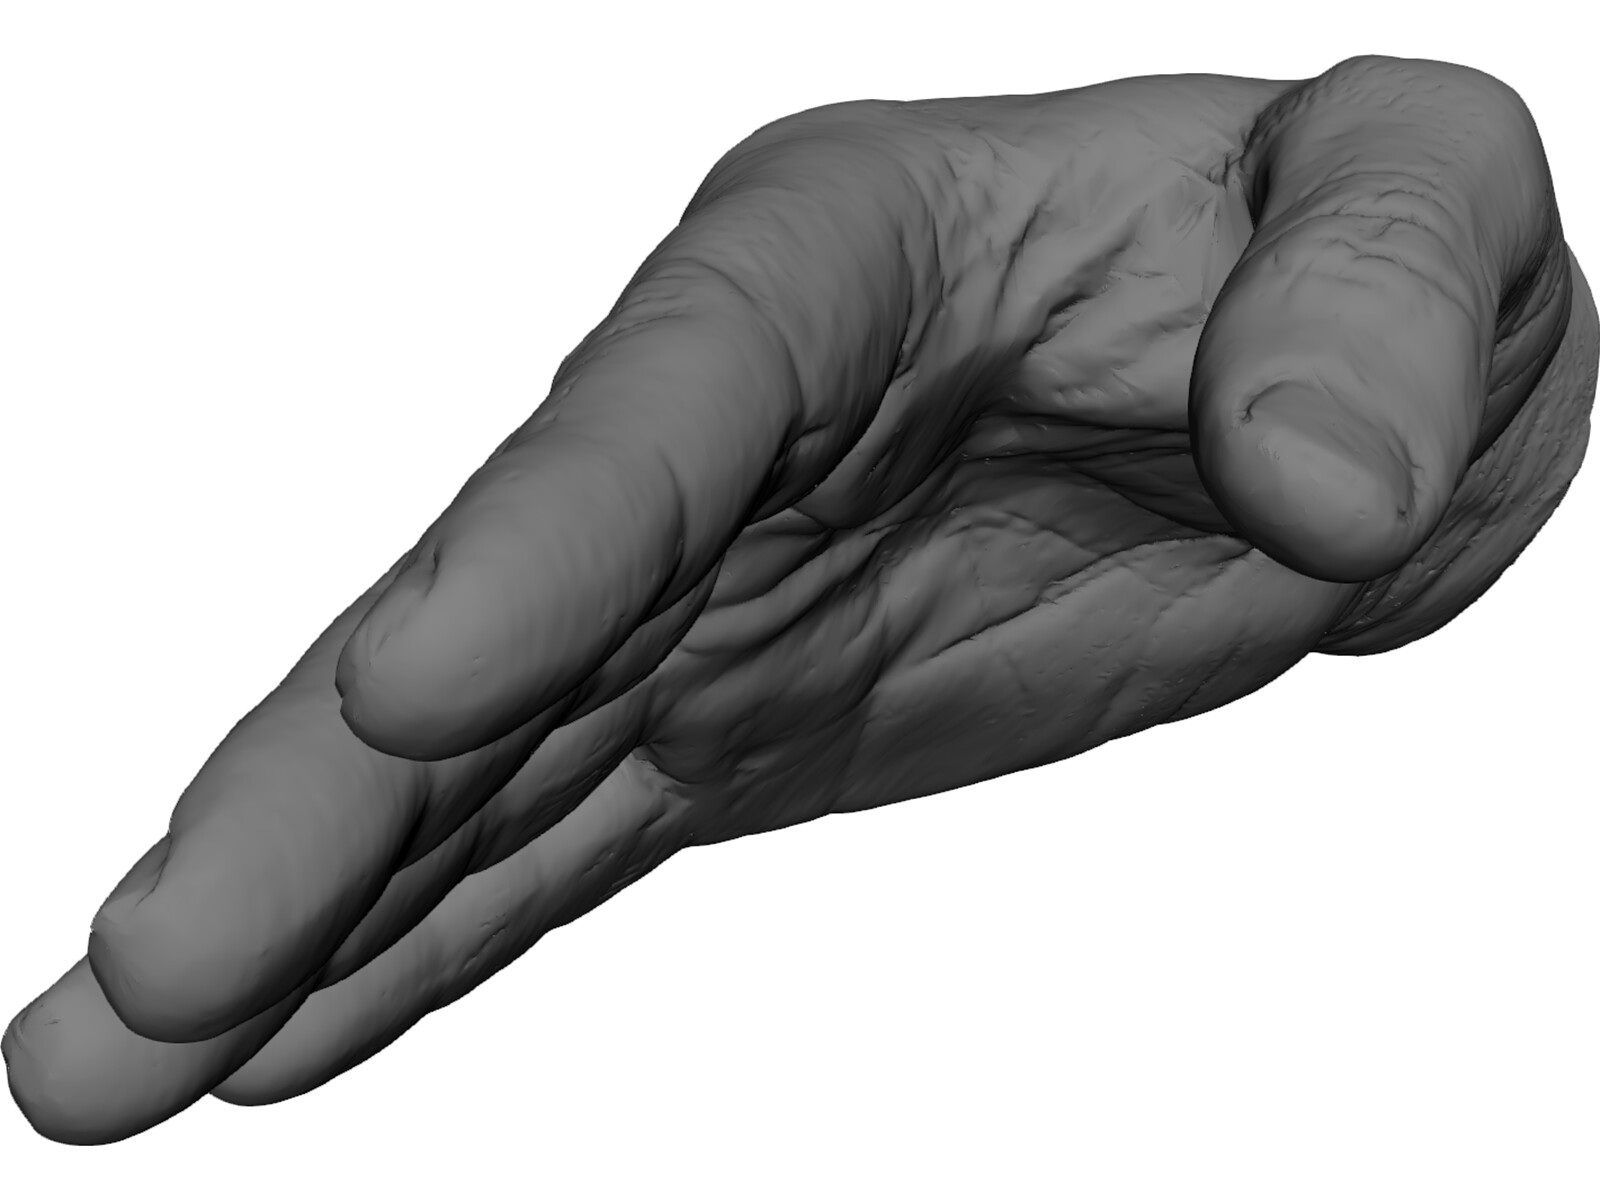 Right Hand Male